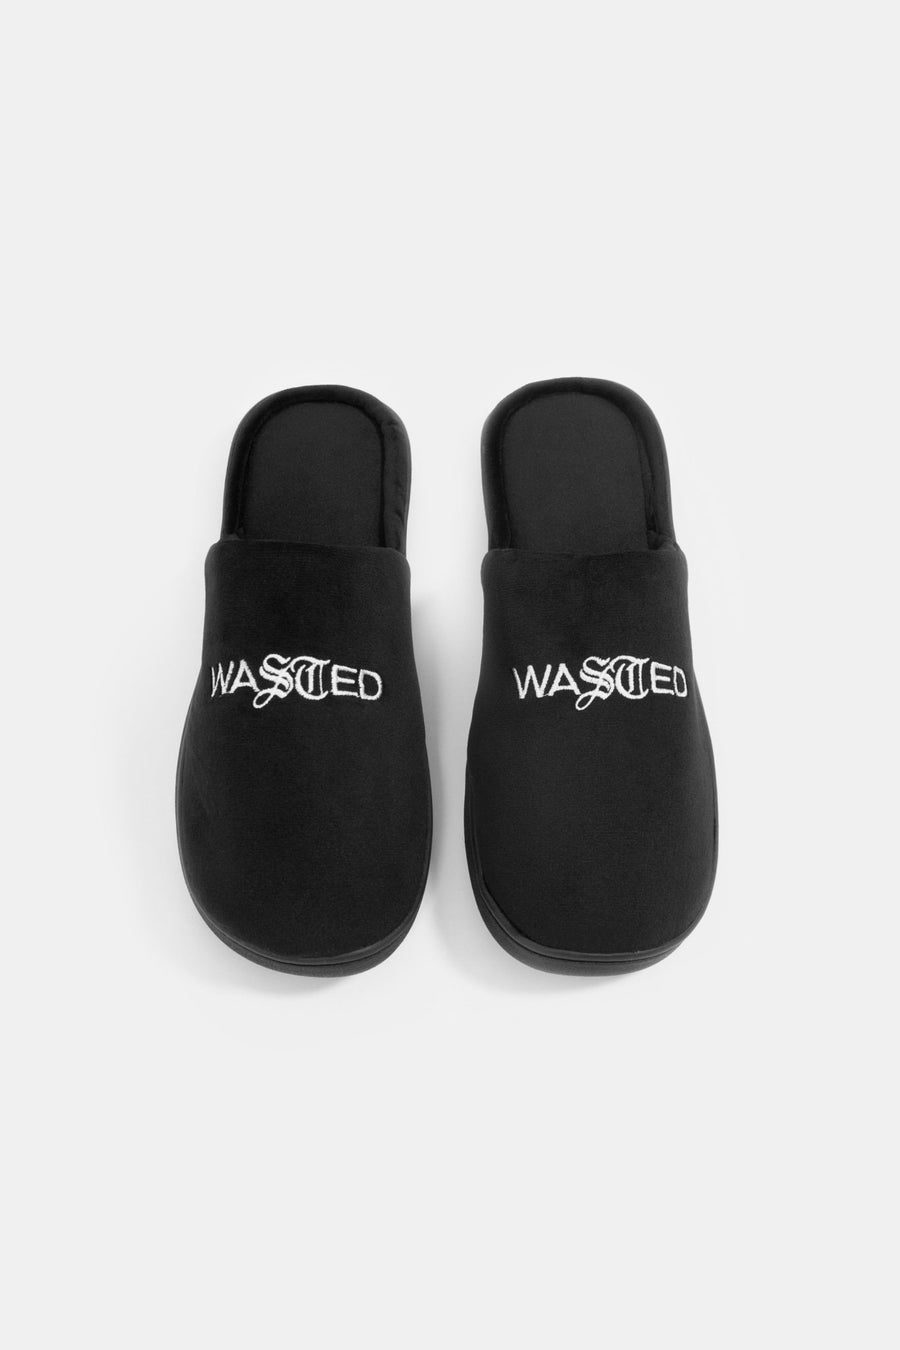 Chaussons Signature - WASTED PARIS